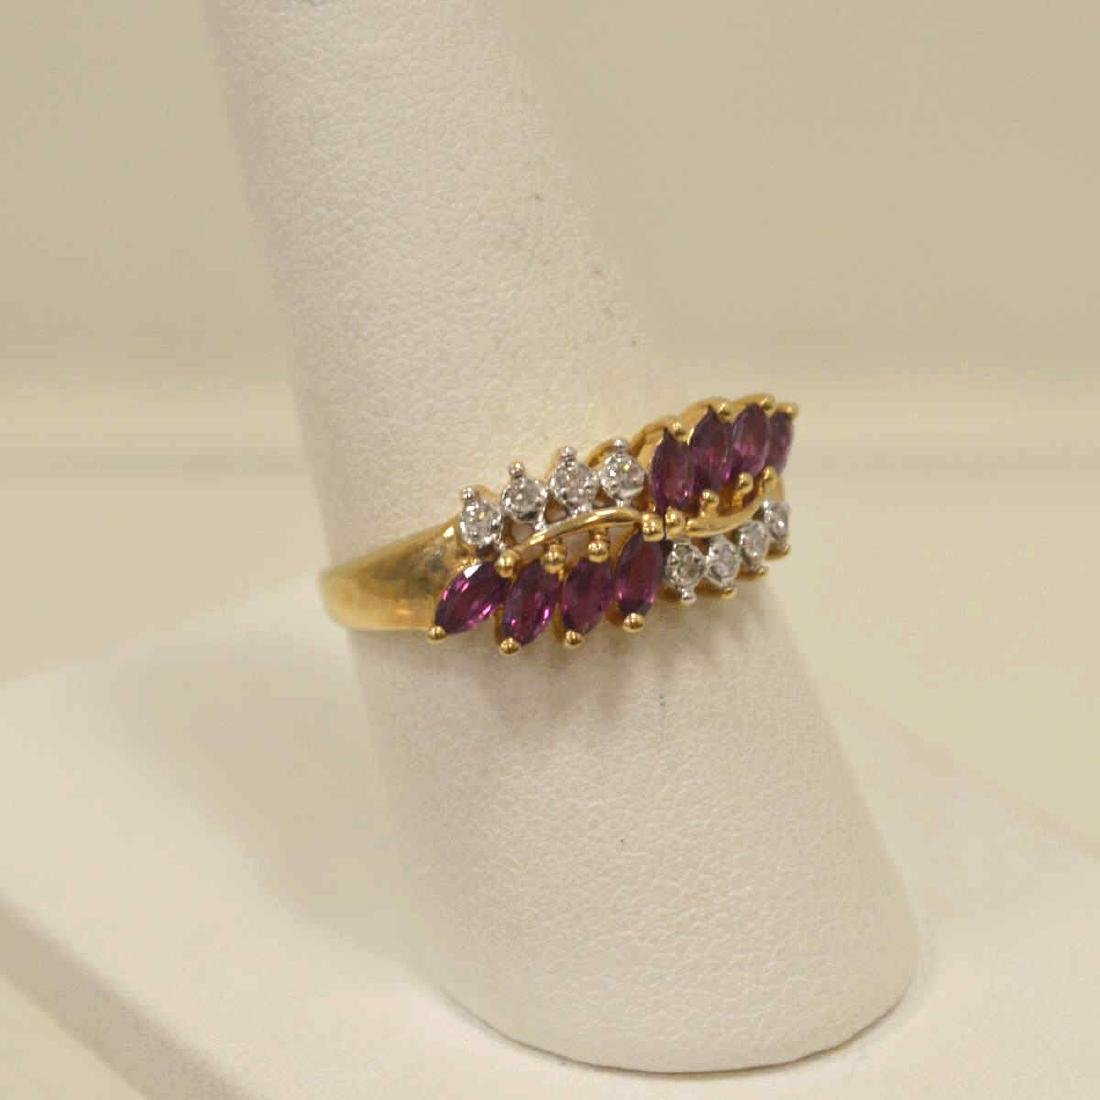 10kt yellow gold ruby and diamond ring - 2